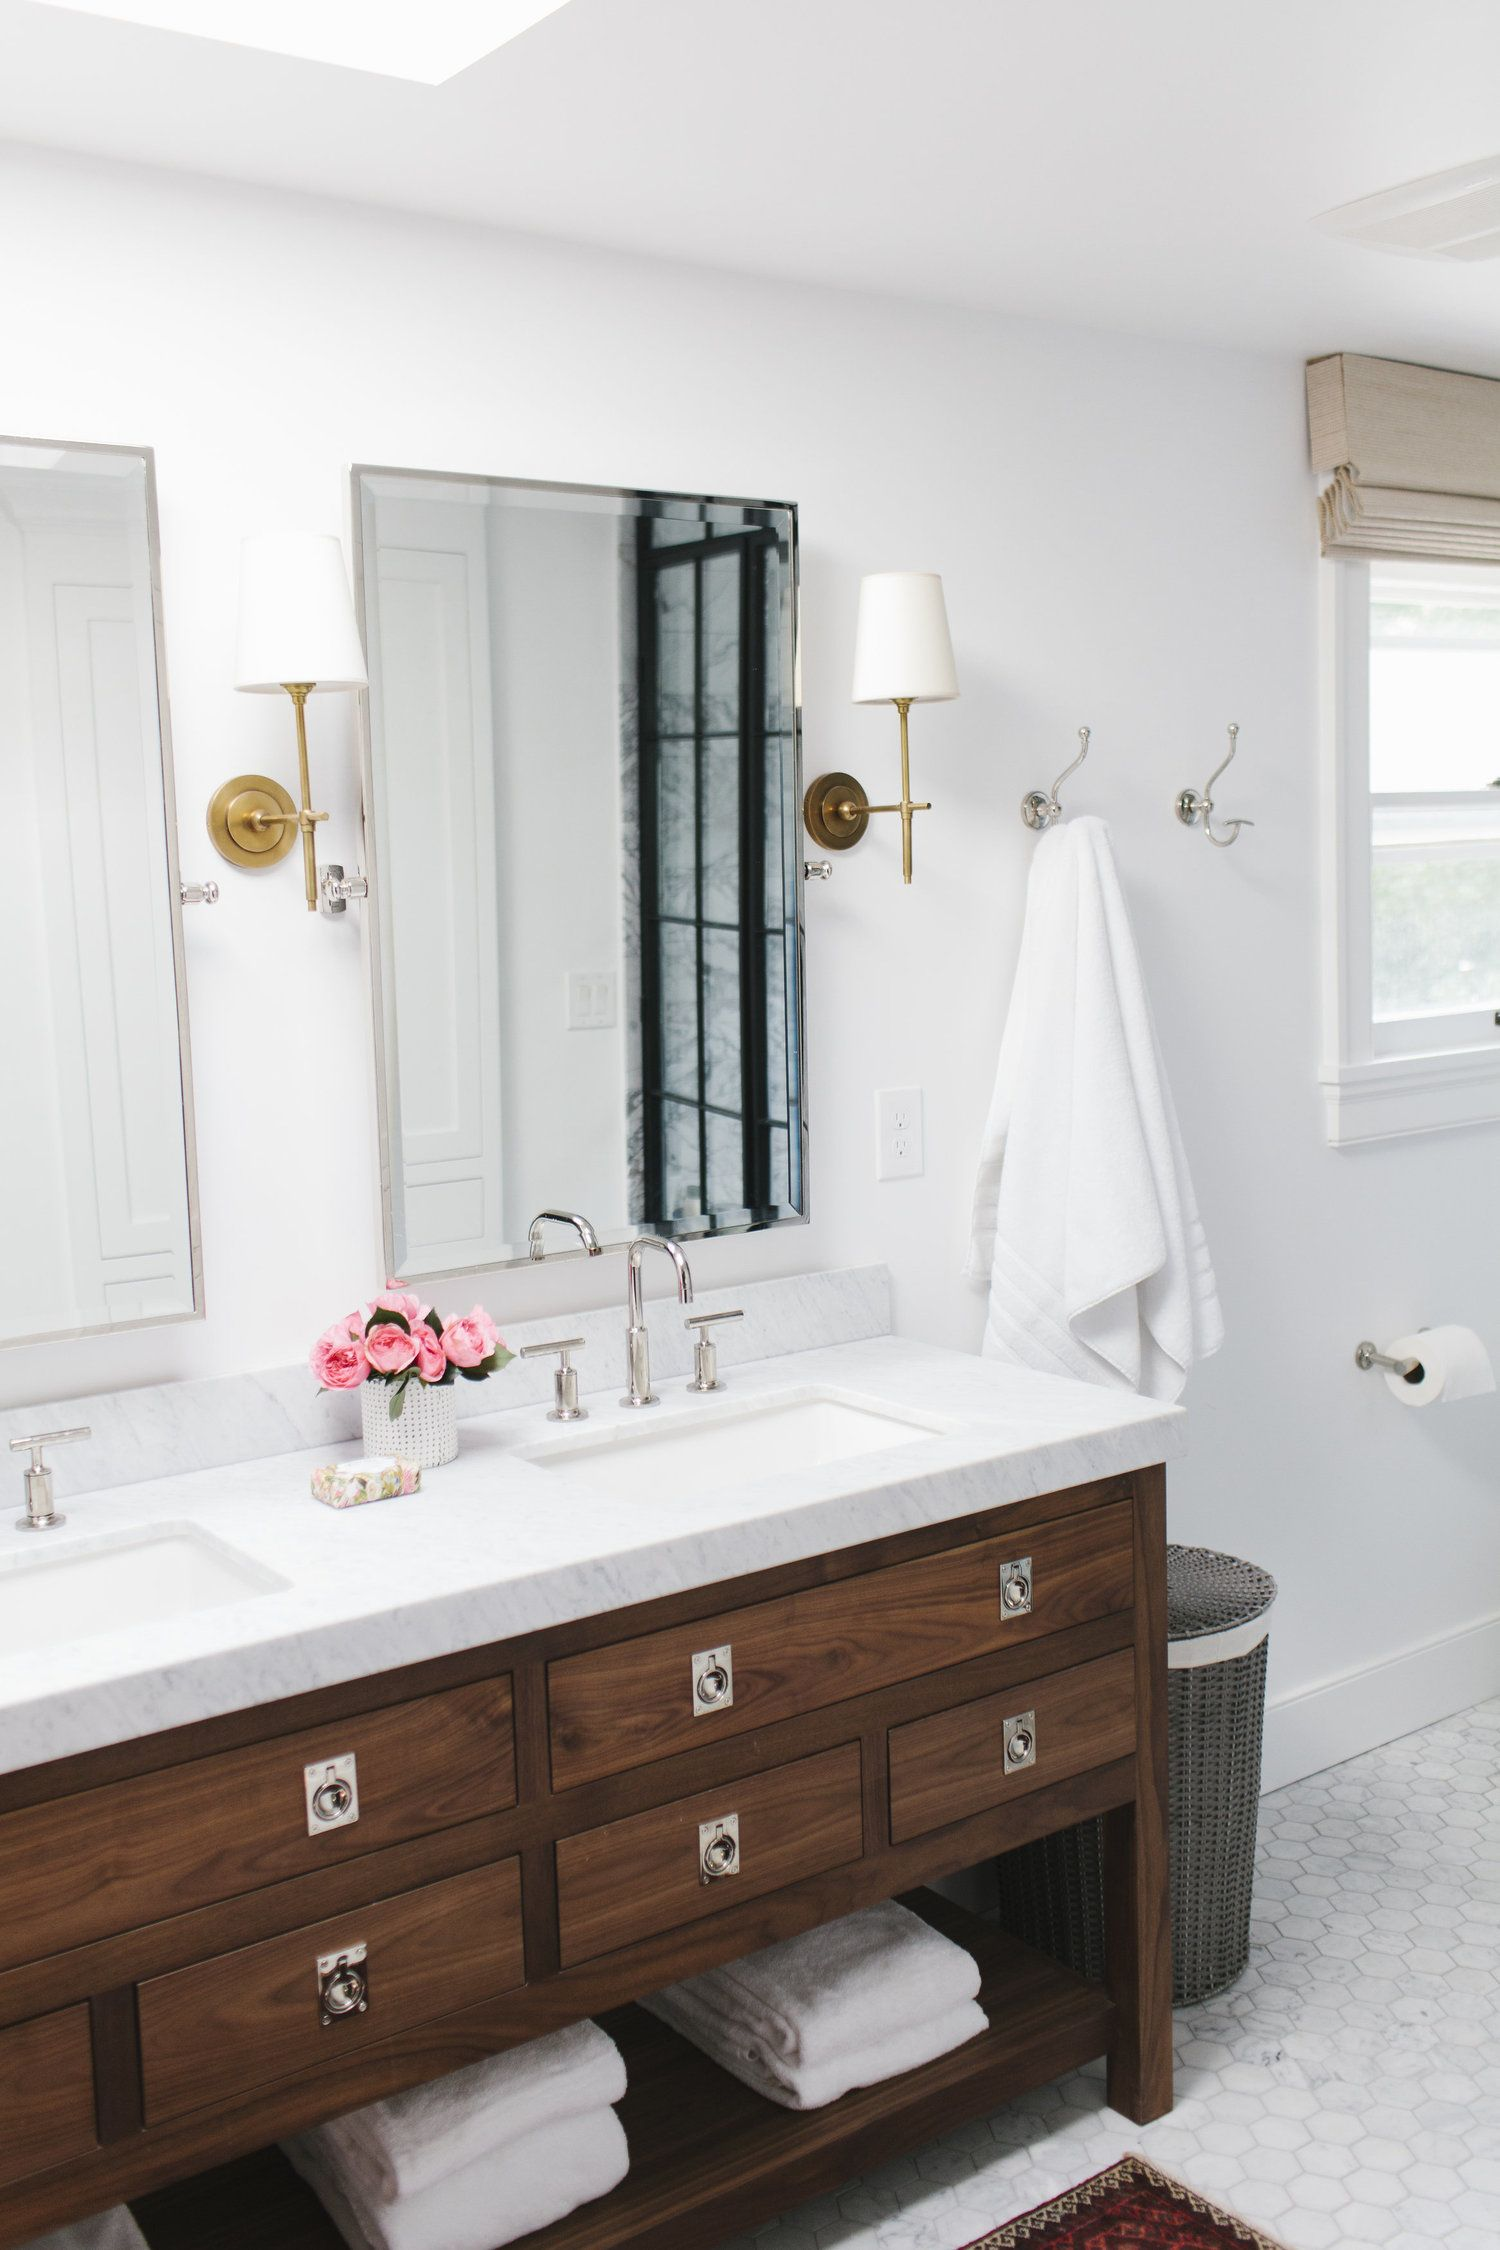 Lynwood remodel master bedroom and bath studio mcgee marbles and vanities Vanity for master bedroom